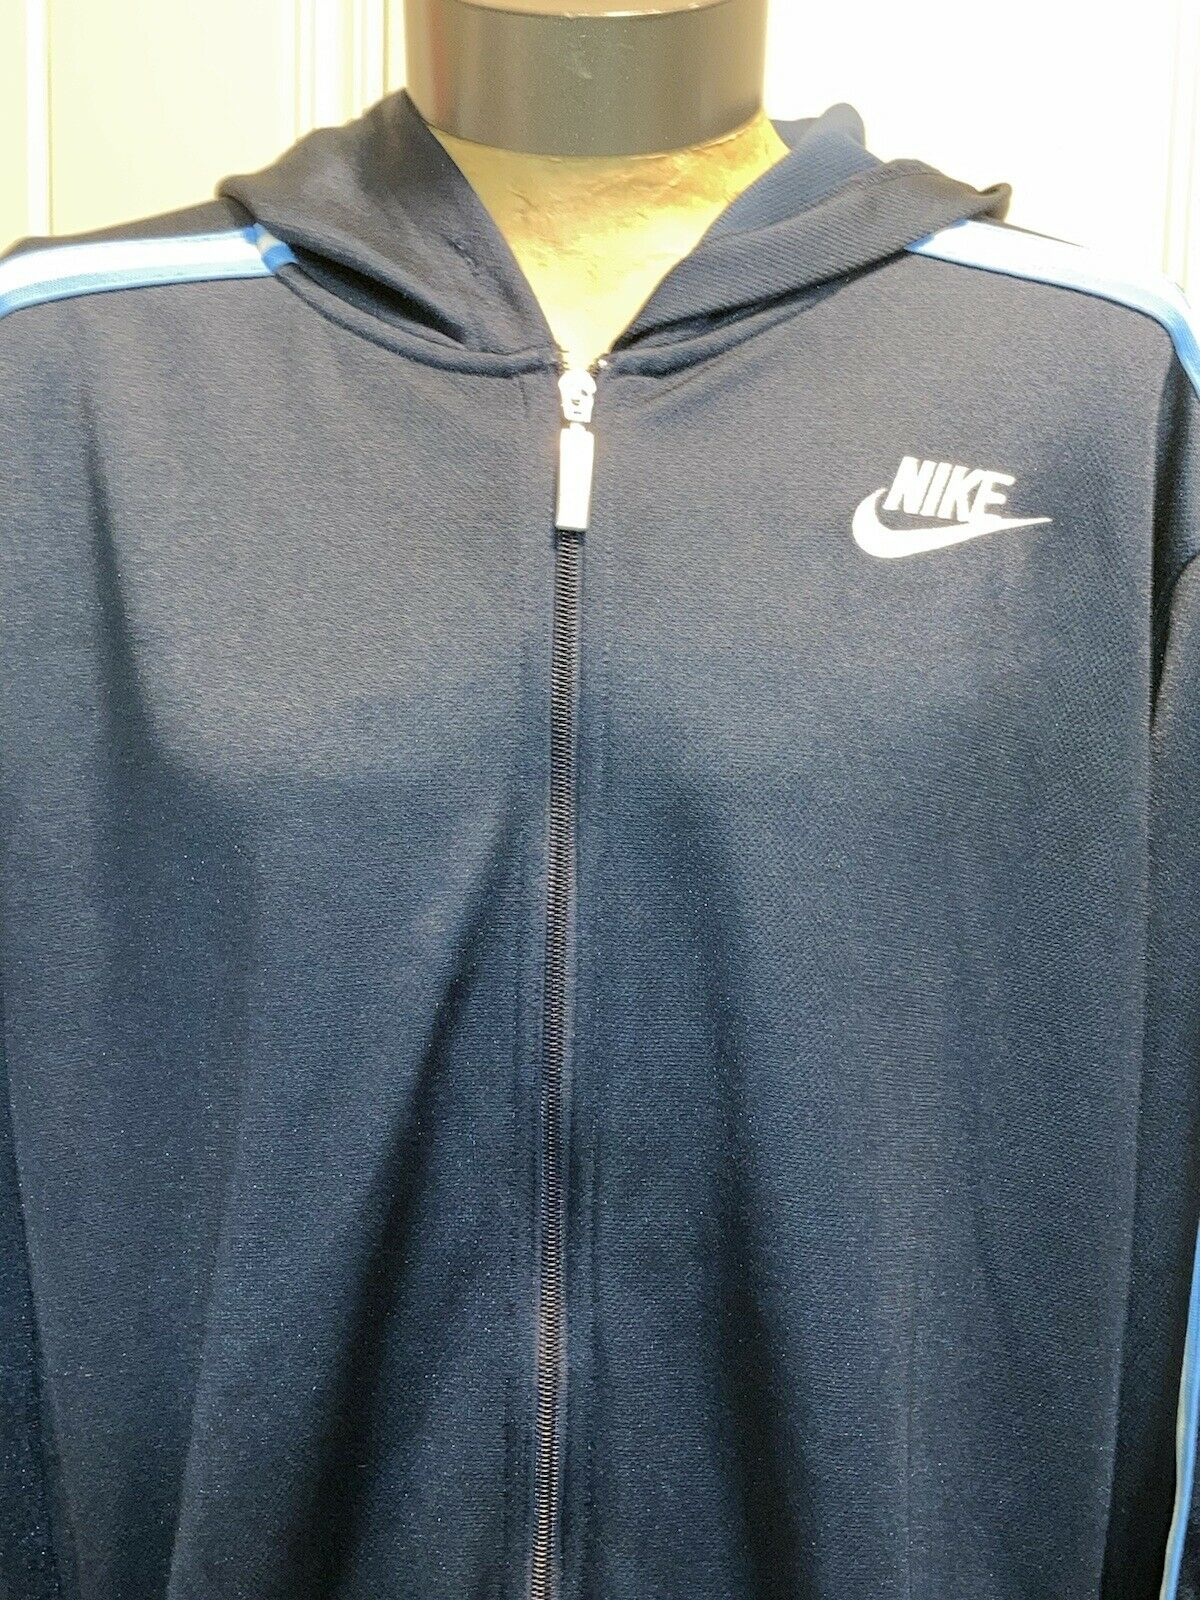 vintage 90s blue and white Nike swoosh hoodie XL … - image 8